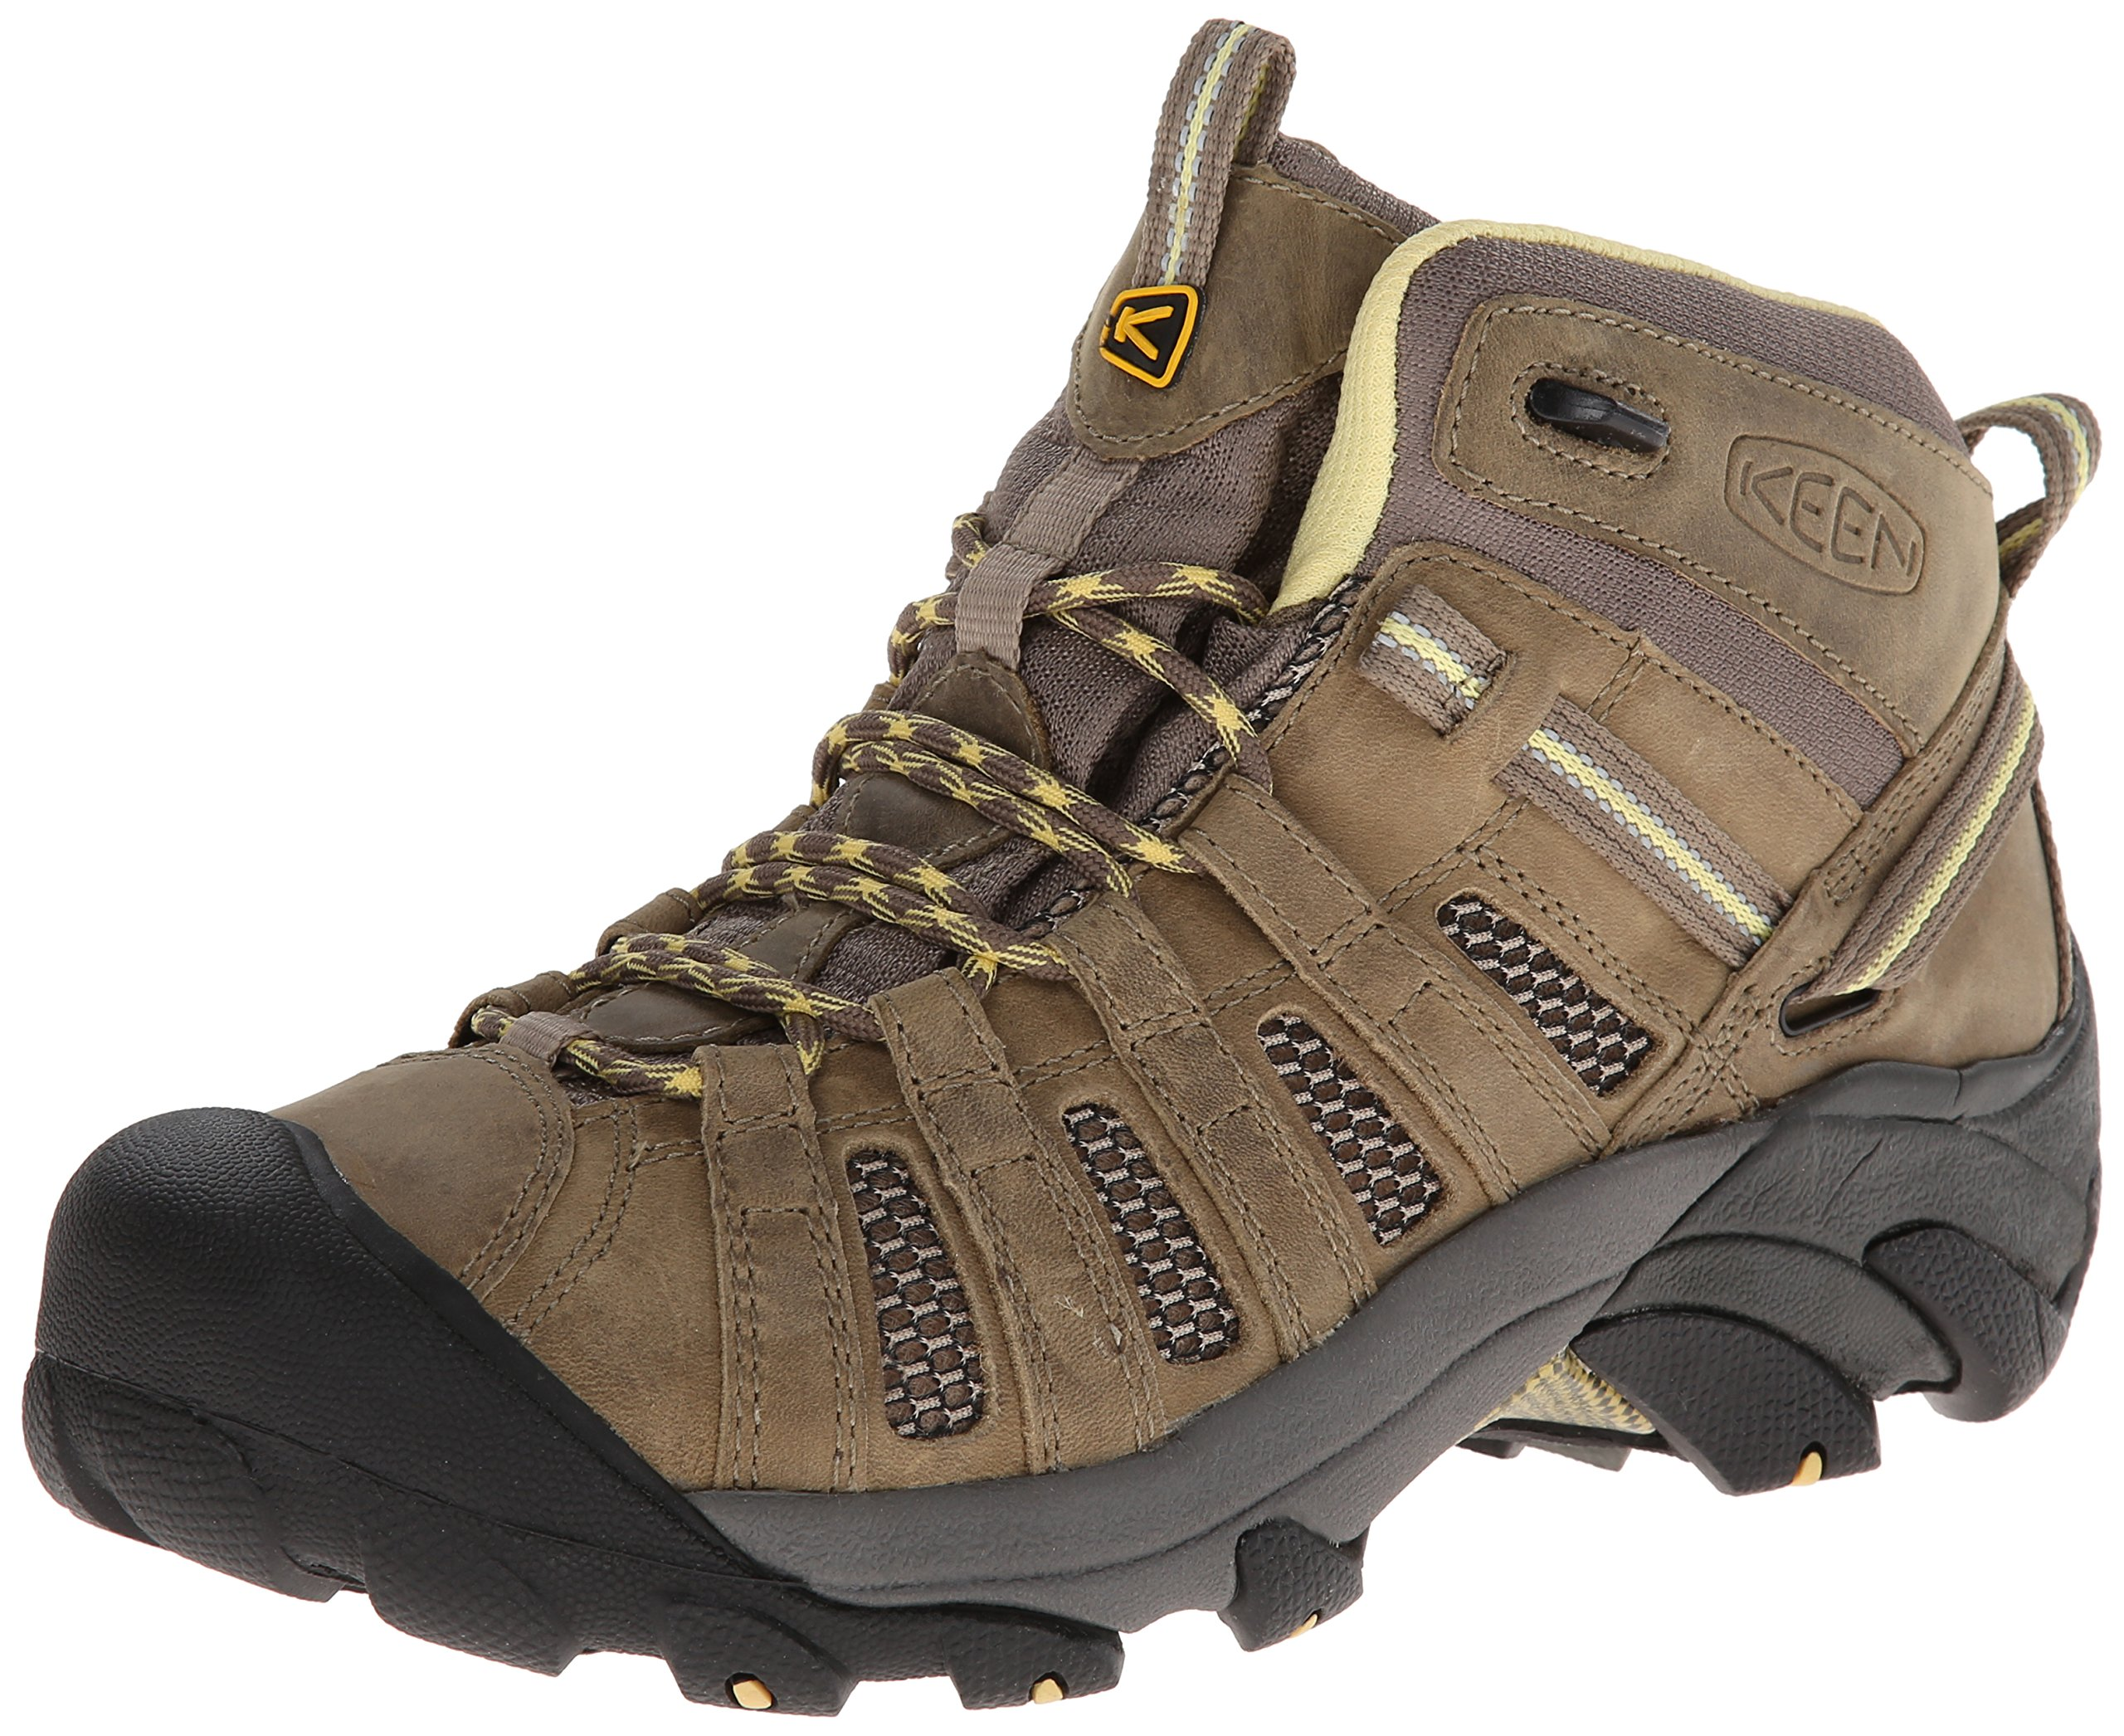 hiking lite comforter temp hike i mens chocolate tec chocolatecoregold gold cat boots hi v most wp comfortable flash